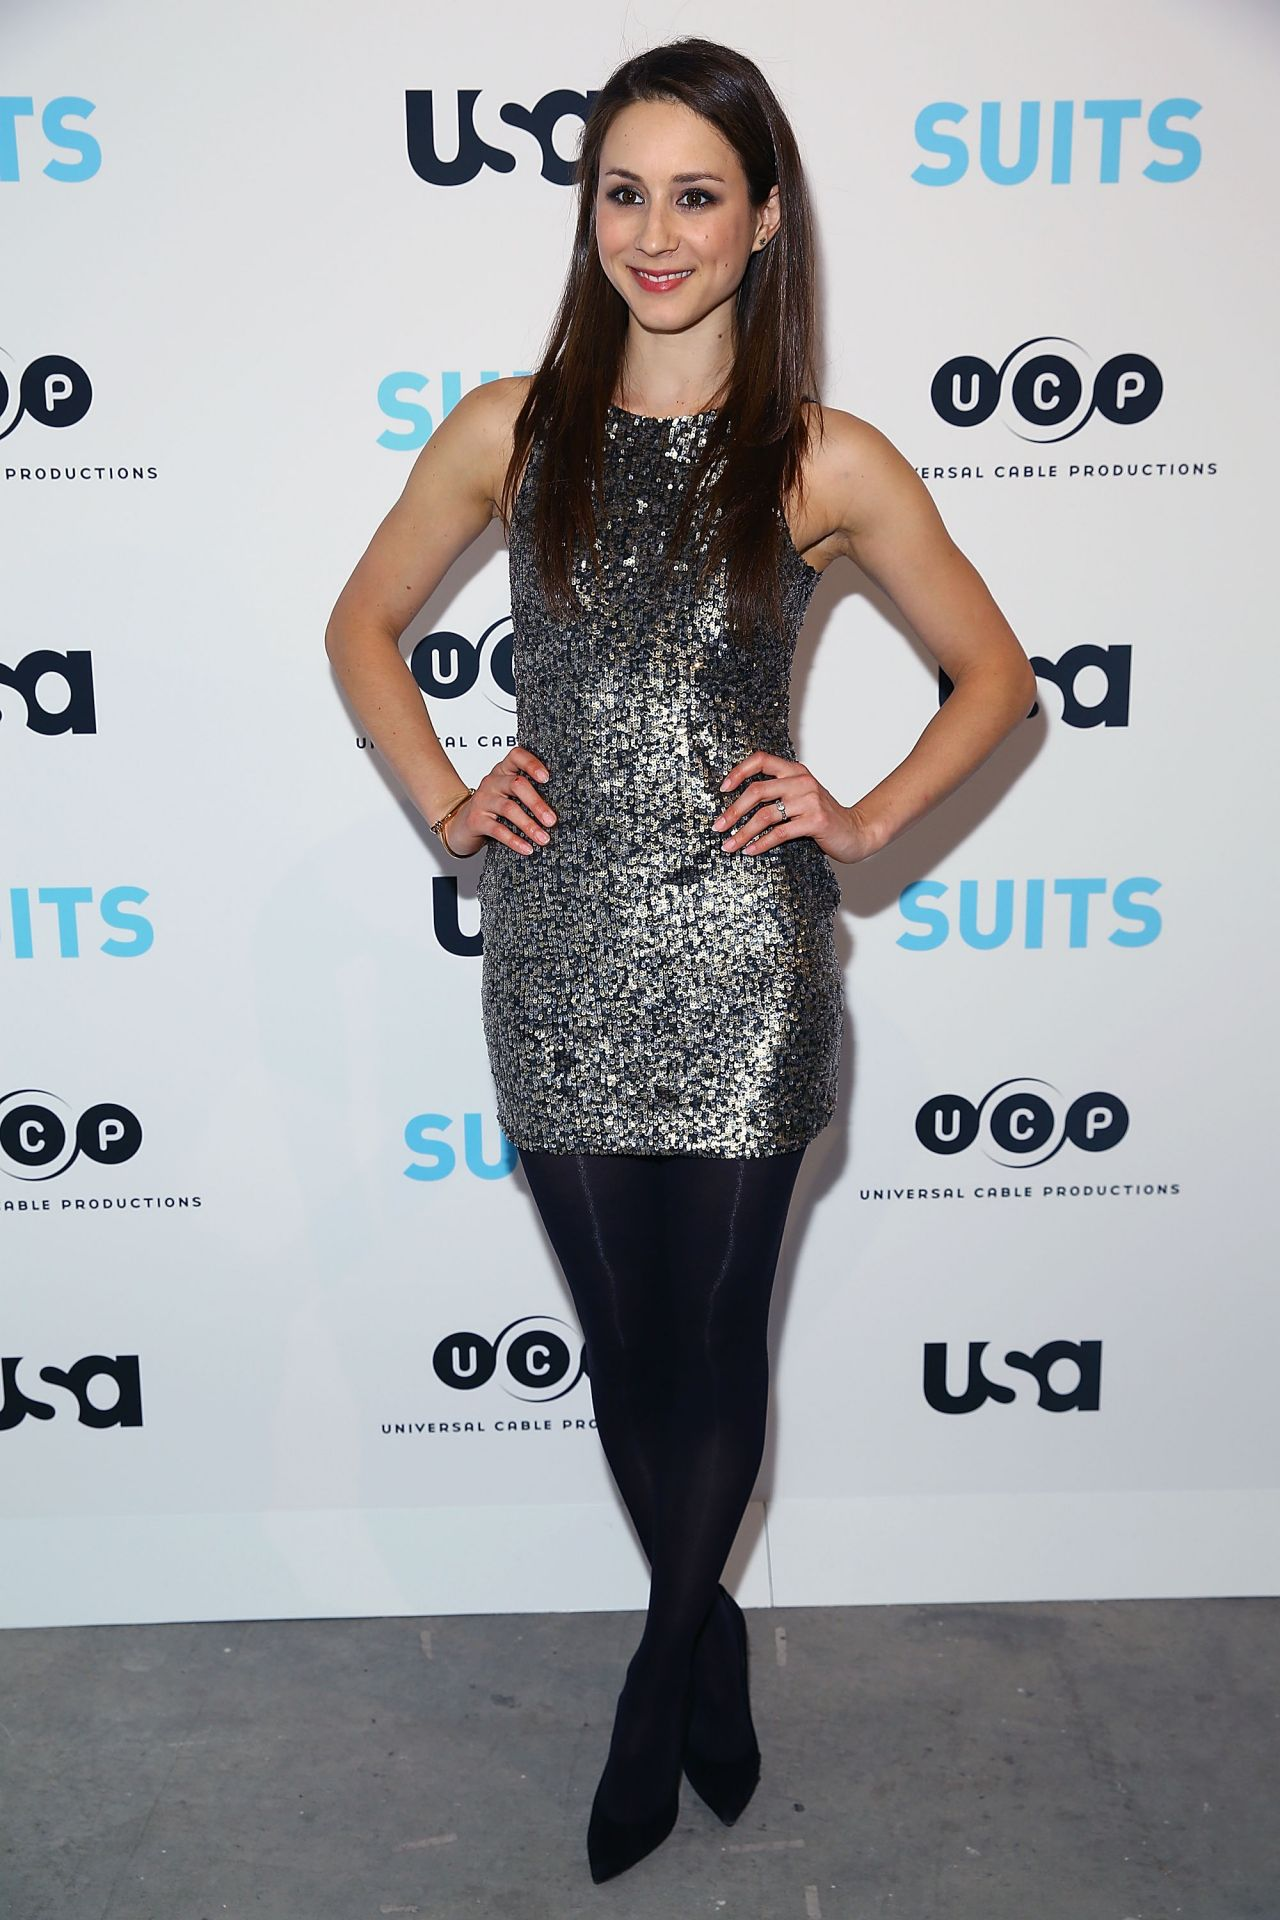 Troian Bellisario - Patrick J. Adams Exhibition Opening of SUITS Gallery in New York City